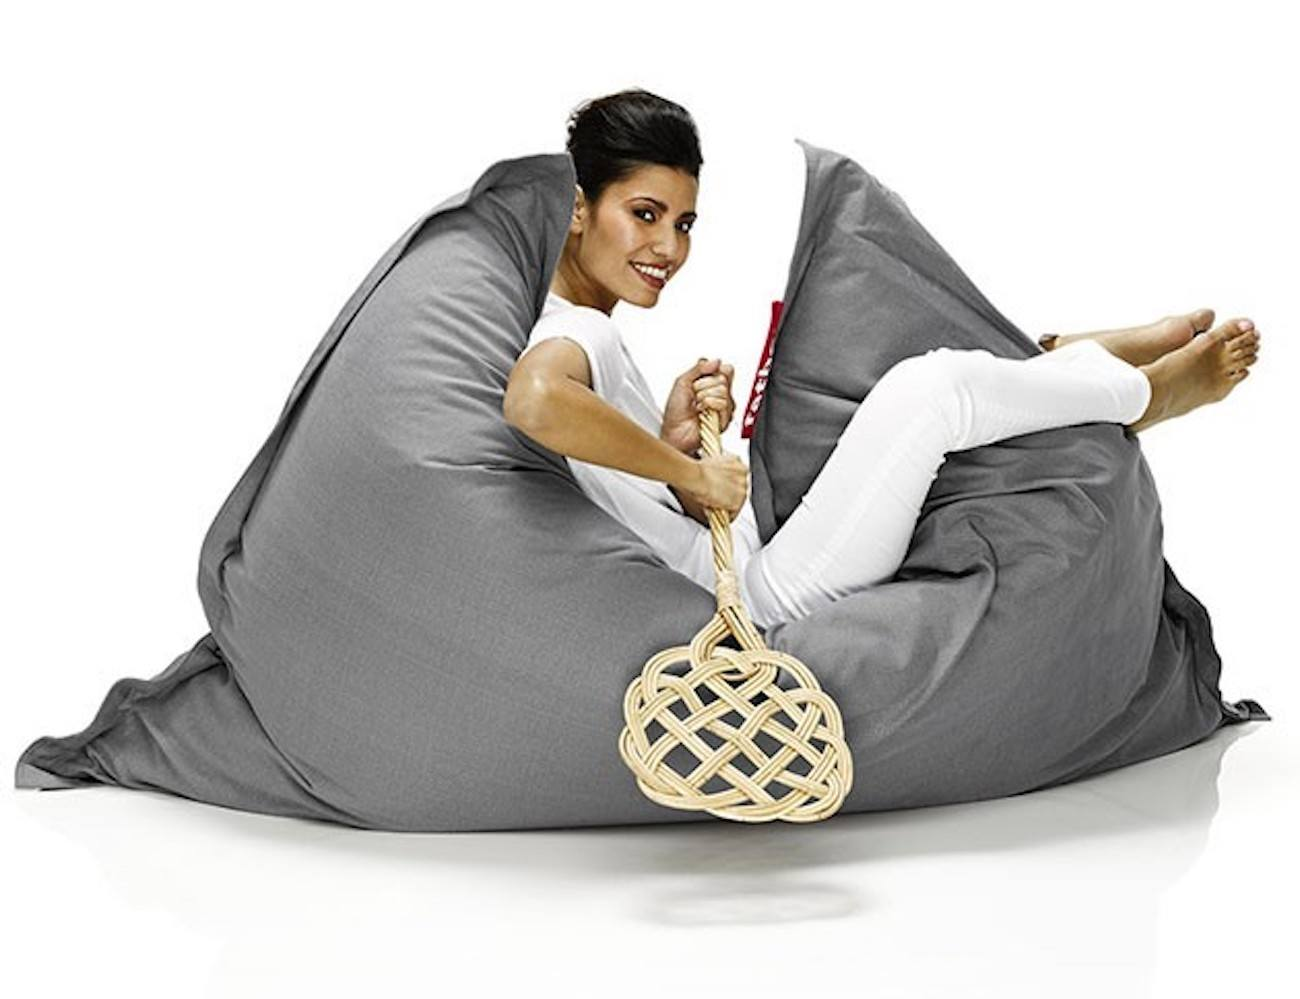 ... Fatboy Stonewashed Bean Bag - Fatboy Stonewashed Bean Bag » Gadget Flow